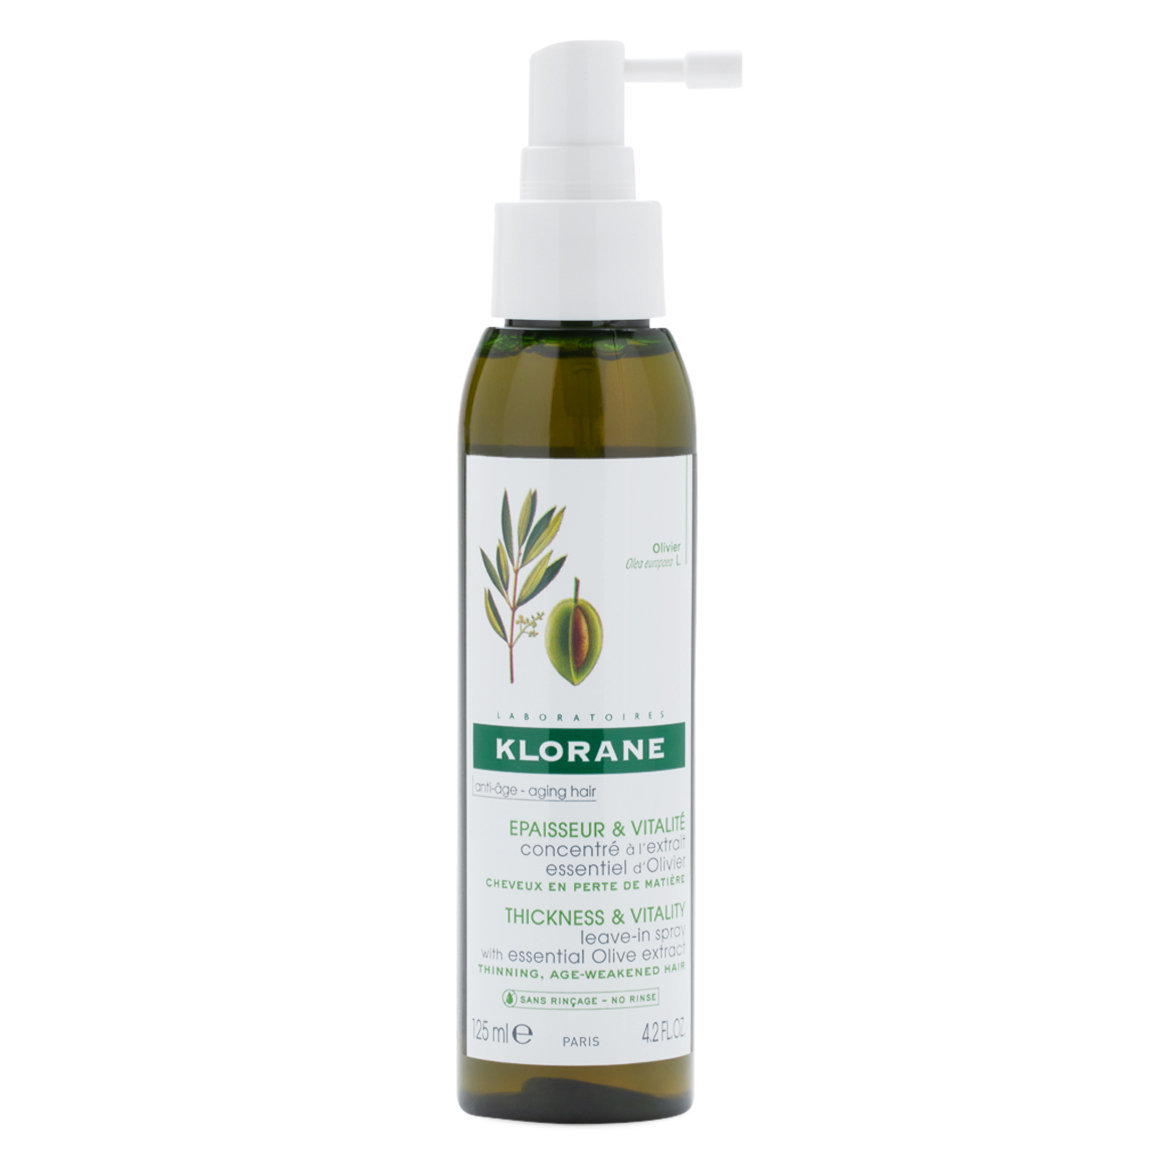 Klorane Leave-In Spray with Essential Olive Extract product swatch.